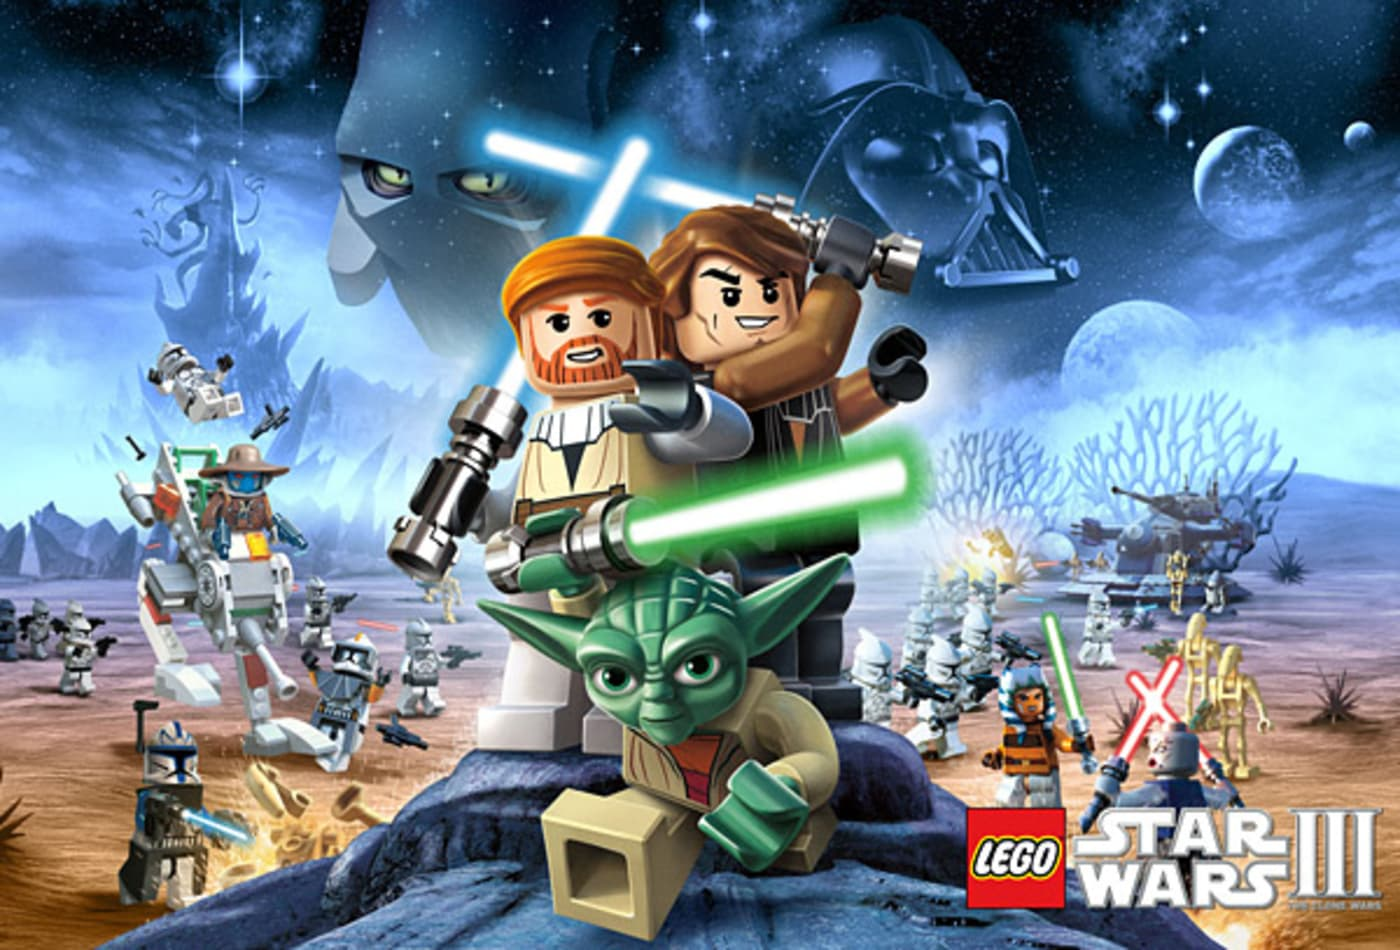 CNBC_best_selling_video_games_2011_lego.jpg